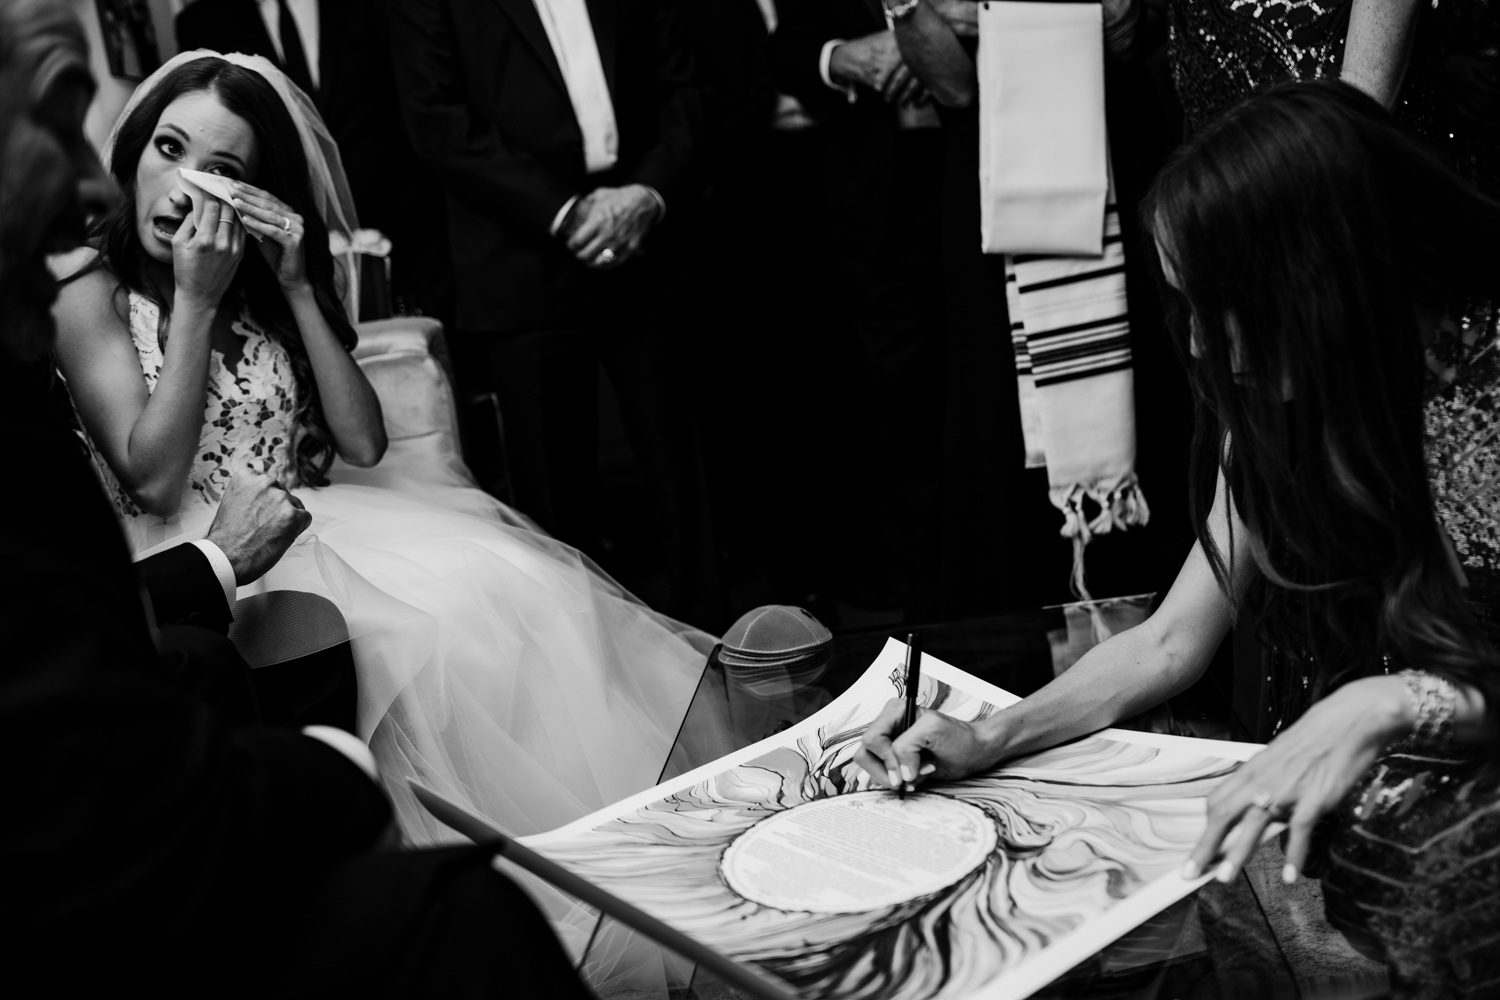 Guests signing a wedding book at a miami wedding reception